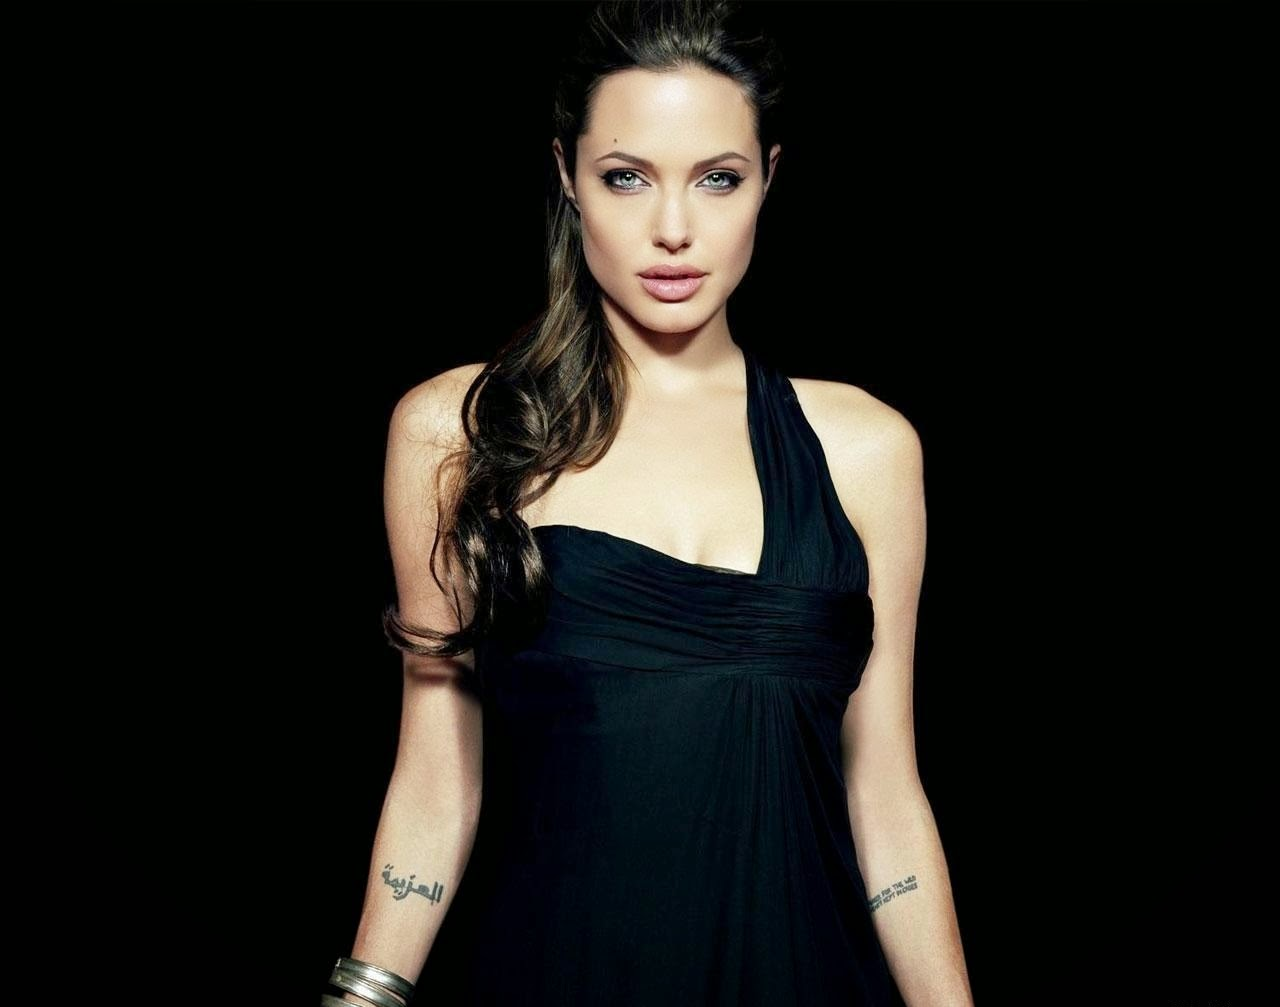 Hot Angelina Jolie in Black Pictures